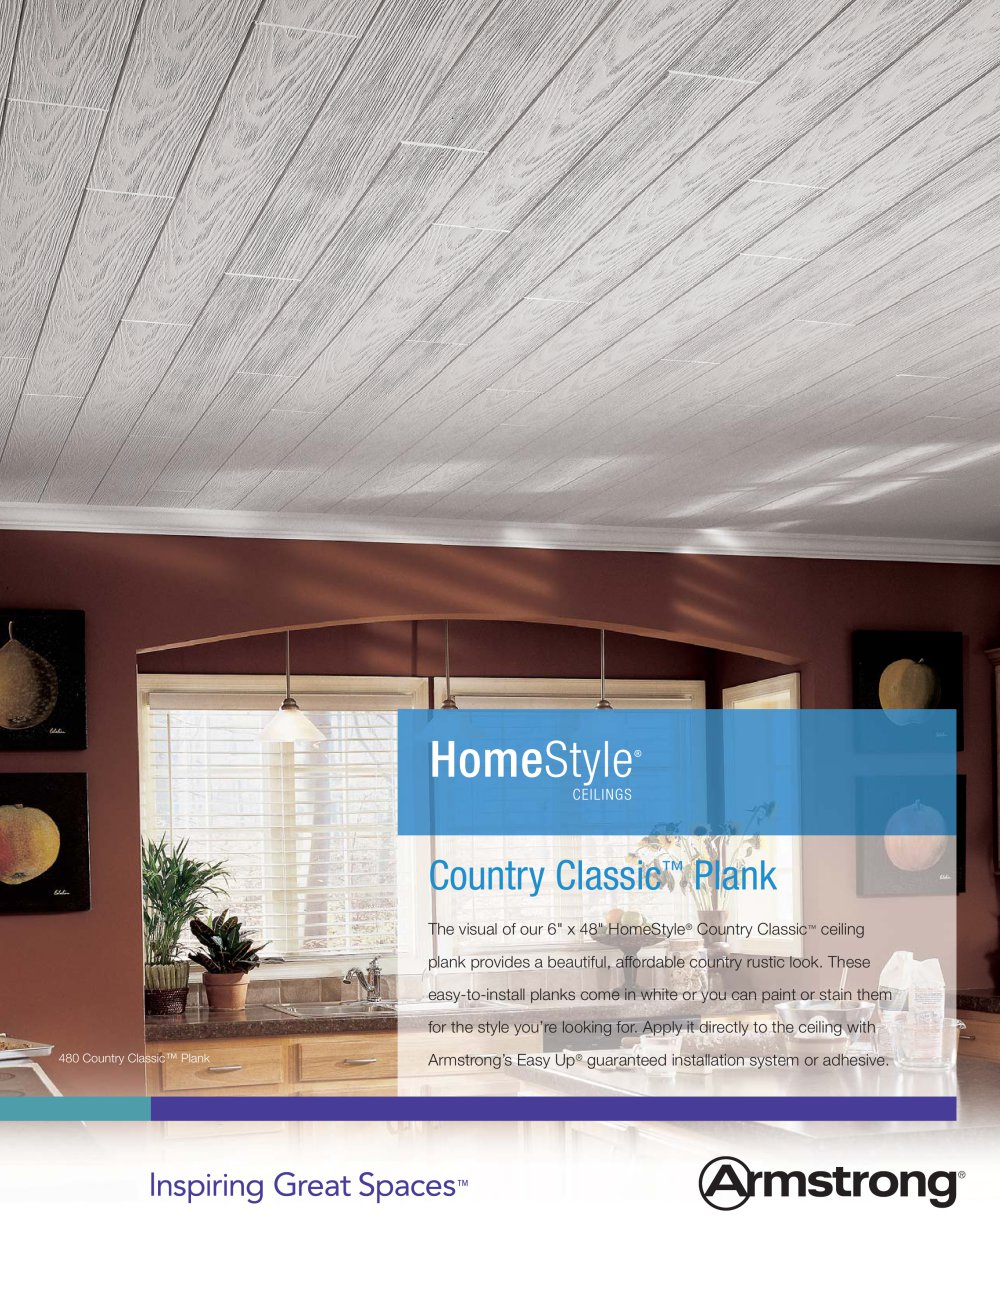 homestyle country classic ceiling planks - armstrong ceilings